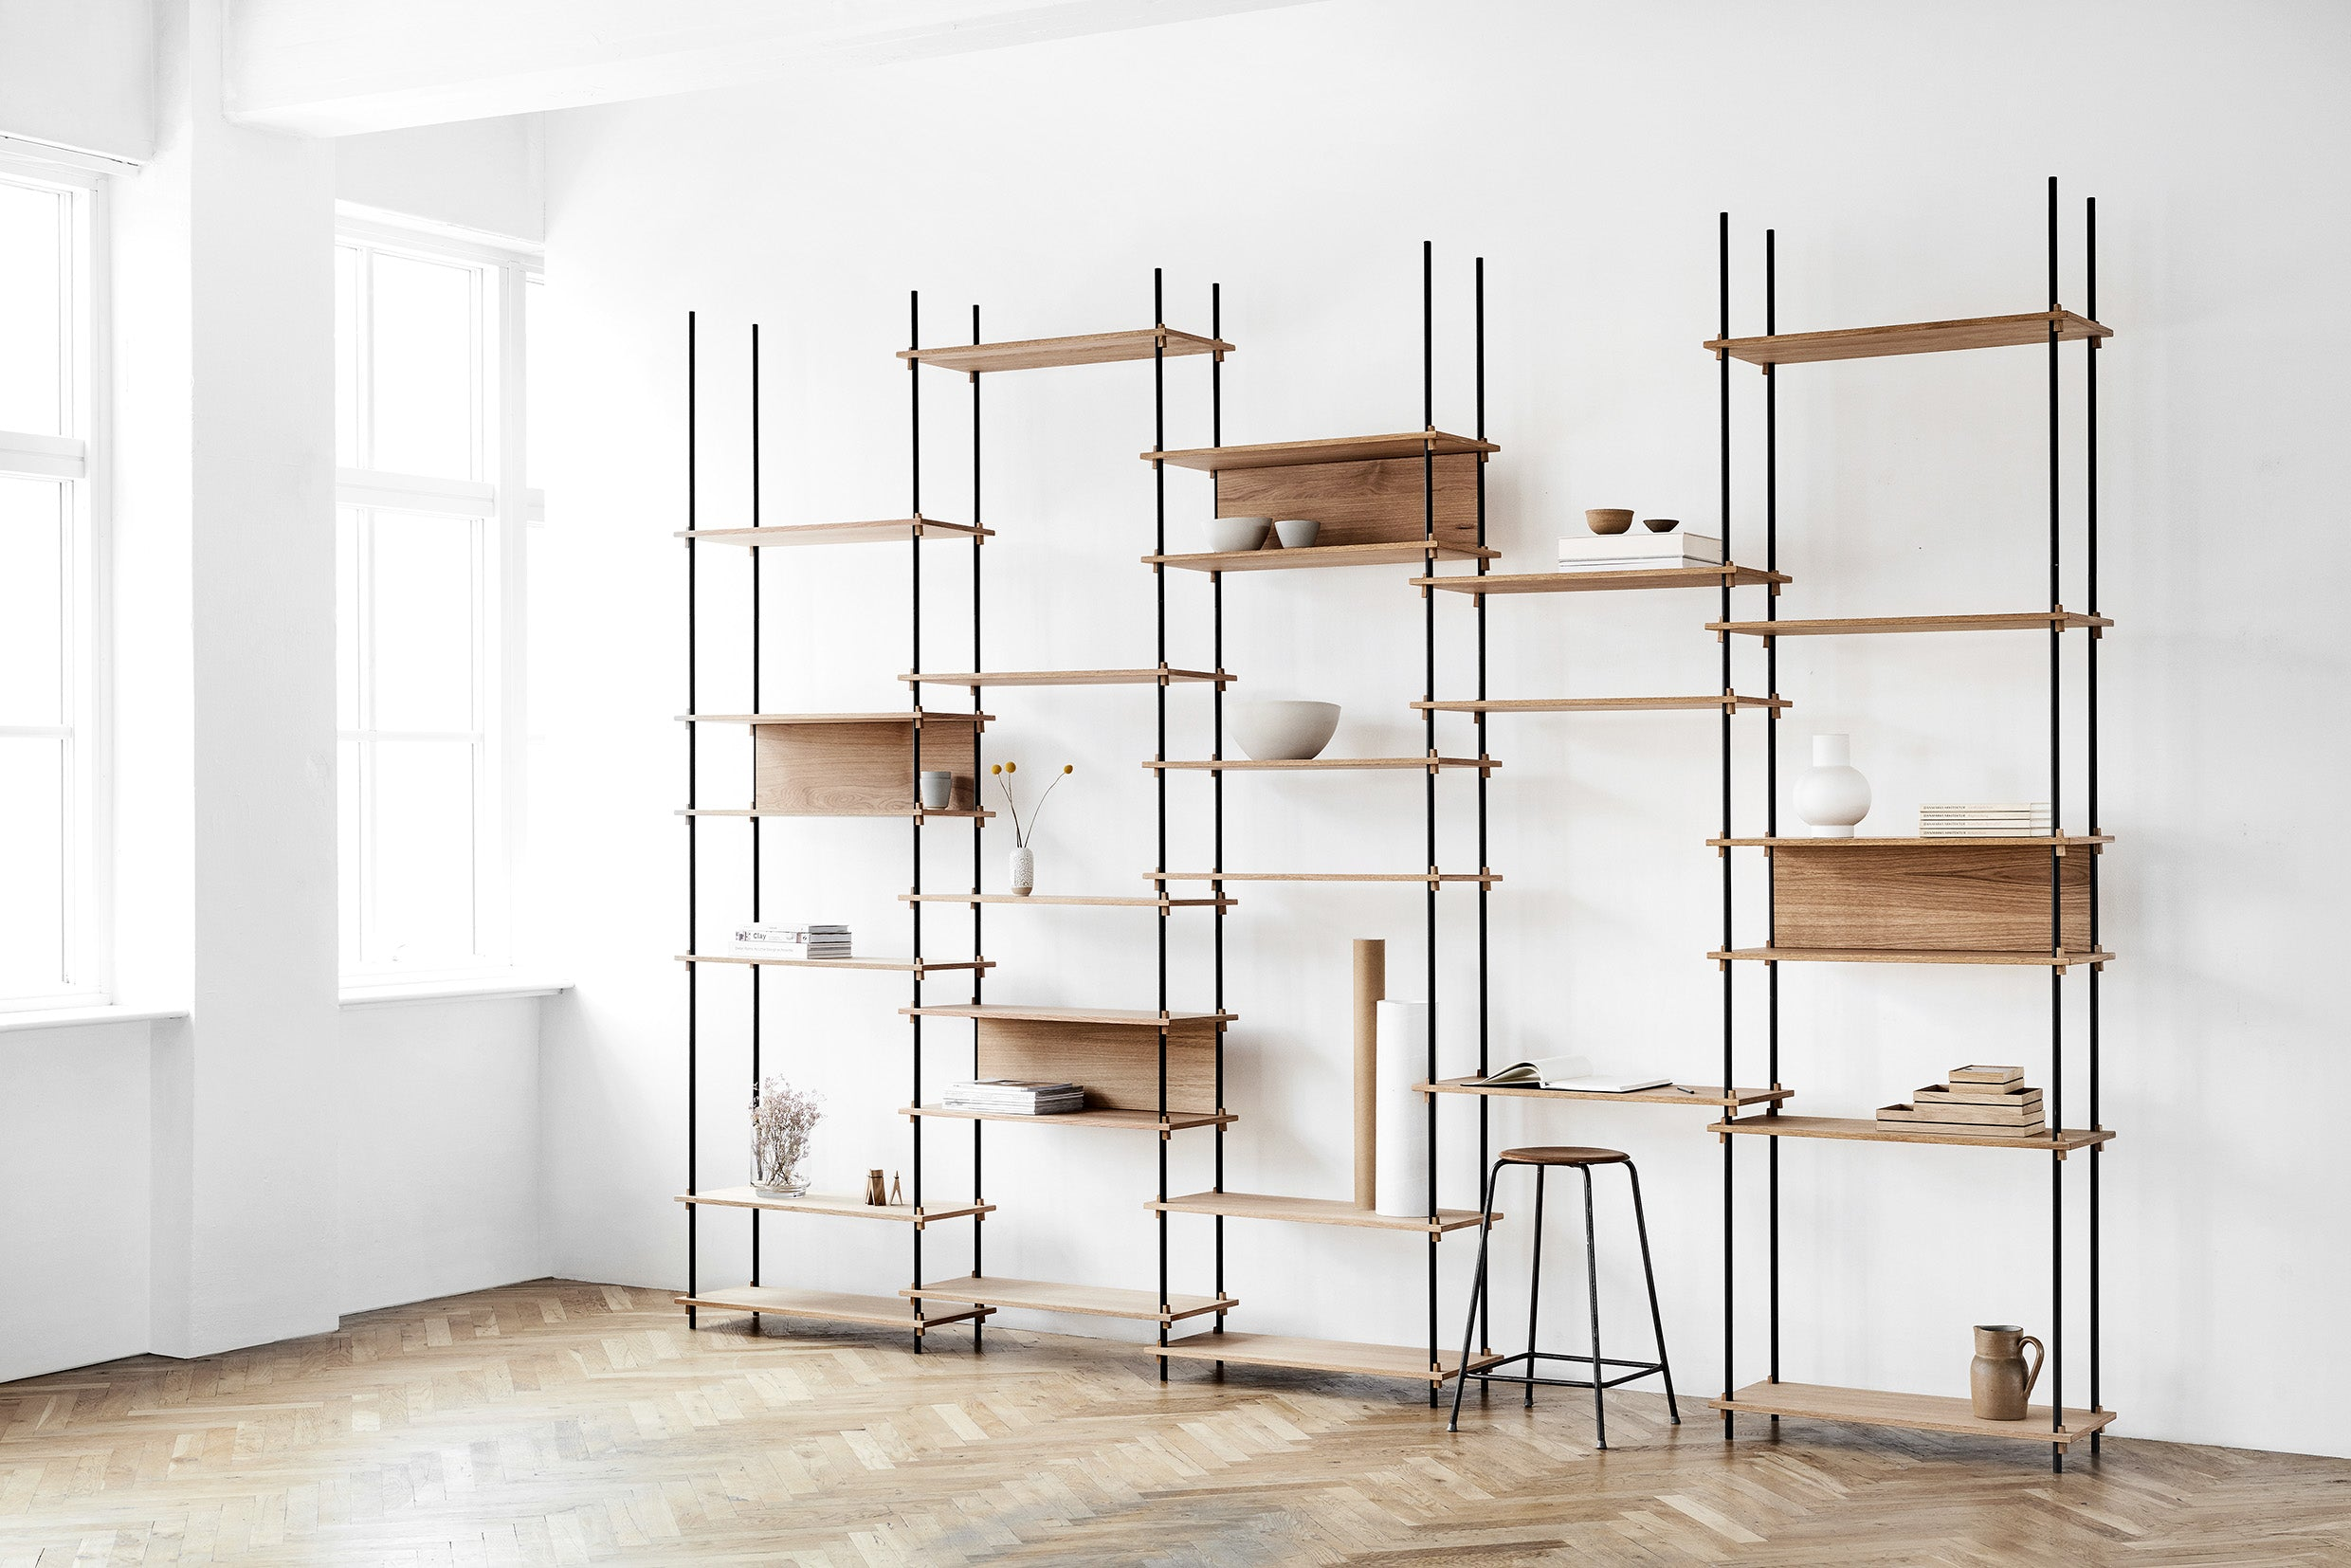 Shelving System - Medium cabinet